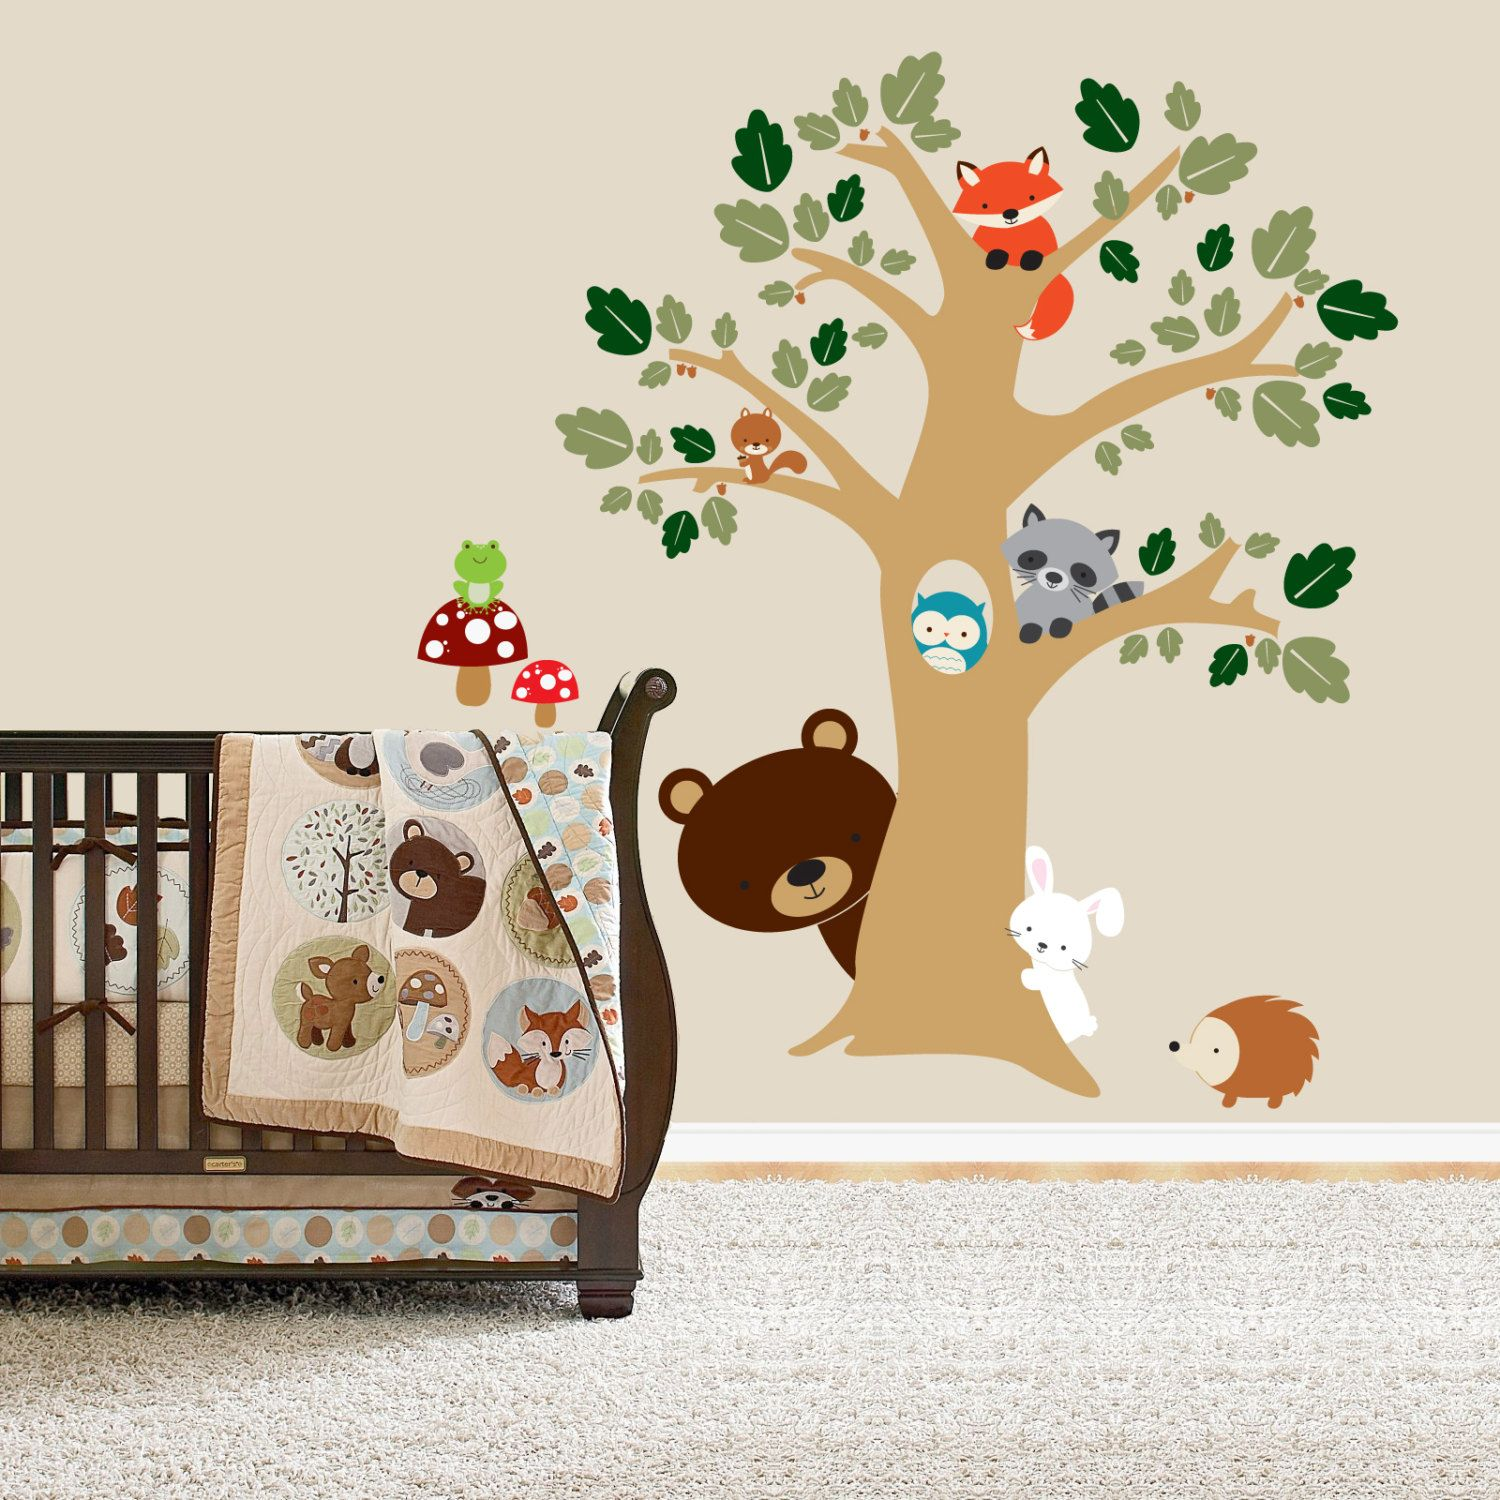 Forest Friends Room Peek A Boo Tree Woodland Animals Decal - Vinyl decals for walls etsy